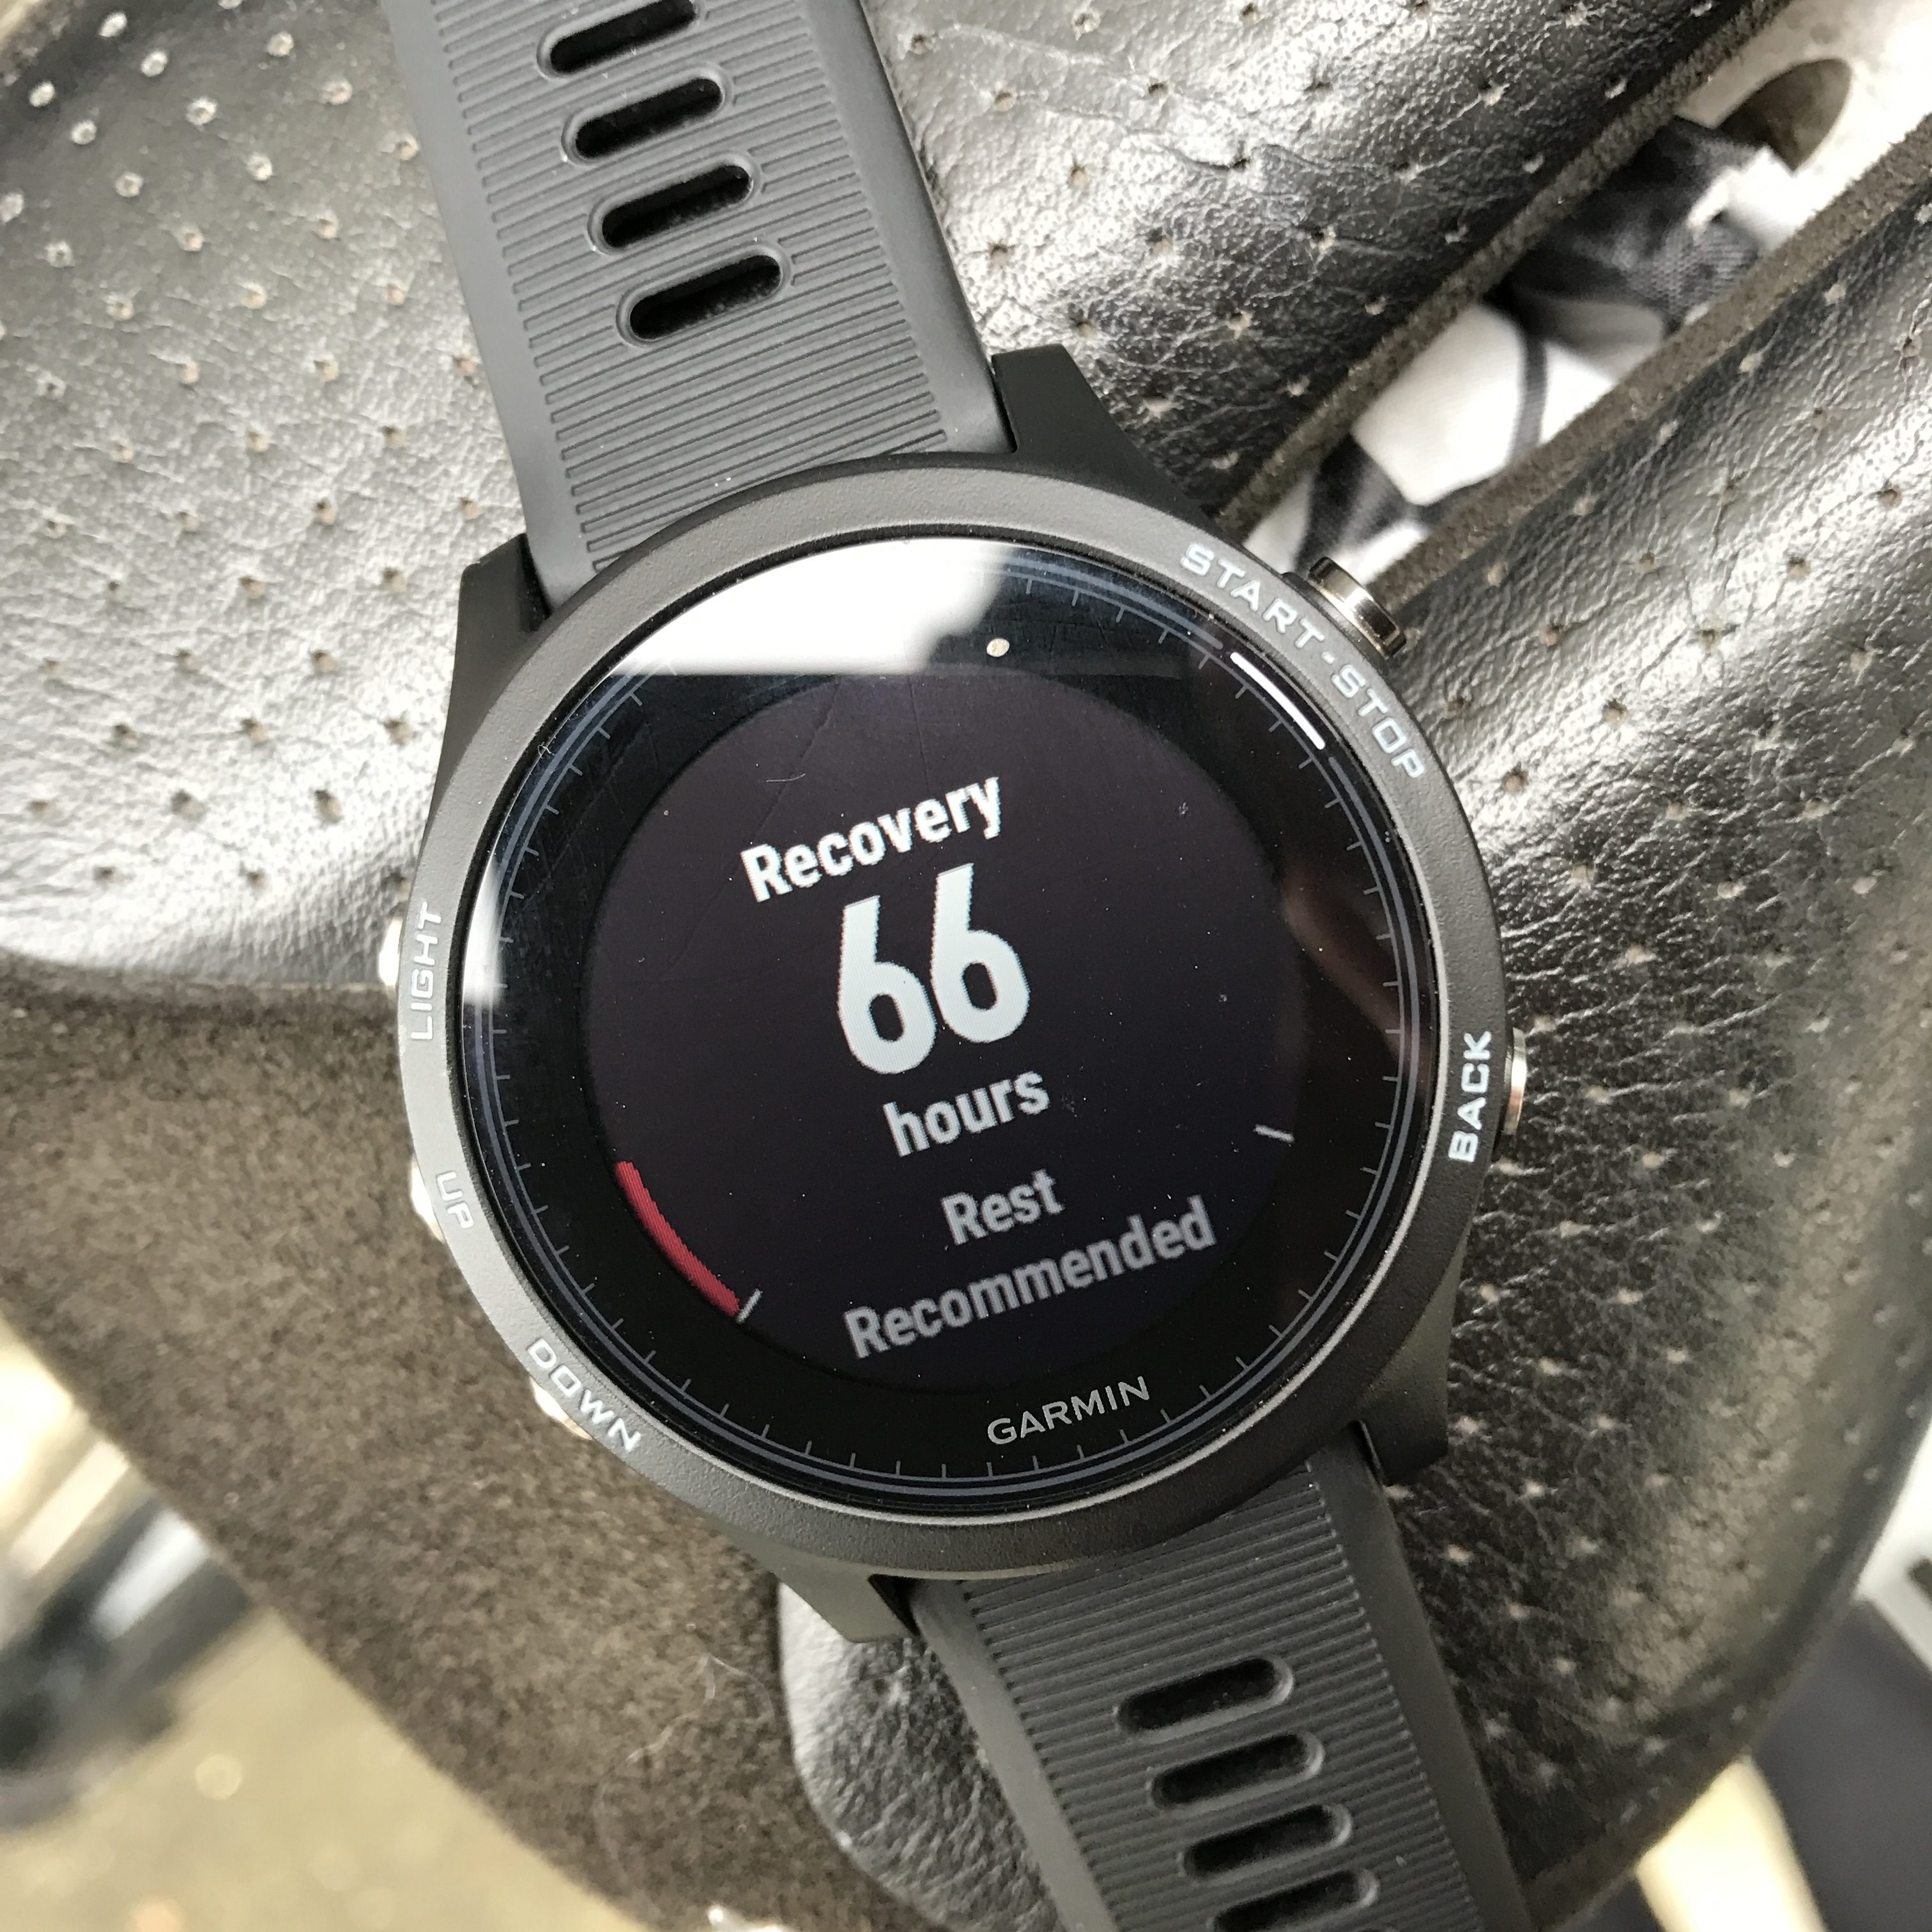 Forerunner 935XT recovery rest recommended